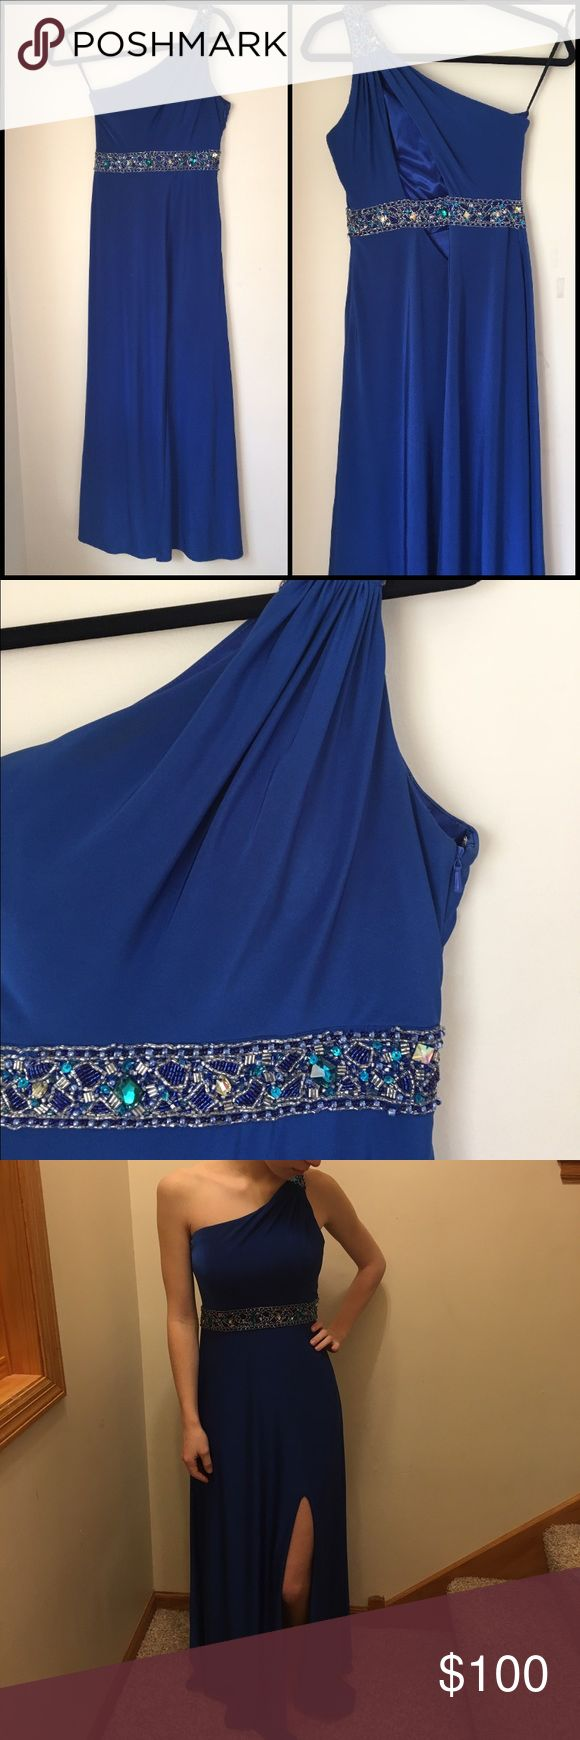 "Gigi Royal Blue, One-Strapped Prom, Pageant Dress This elegant, royal blue, one-strapped GiGi dress is in amazing condition! Only worn once - no stains, rips, or holes. Back of dress has a cutout. Jeweled belt along the waist. Left leg has an elegant slit. Zipper on the side of dress. Padded cups (not push-up, just substantially lined) so that you don't have to wear a bra. Note: the color in the last picture isn't accurate, just added that to model the dress. For reference, I'm 5'4"". Perfect…"